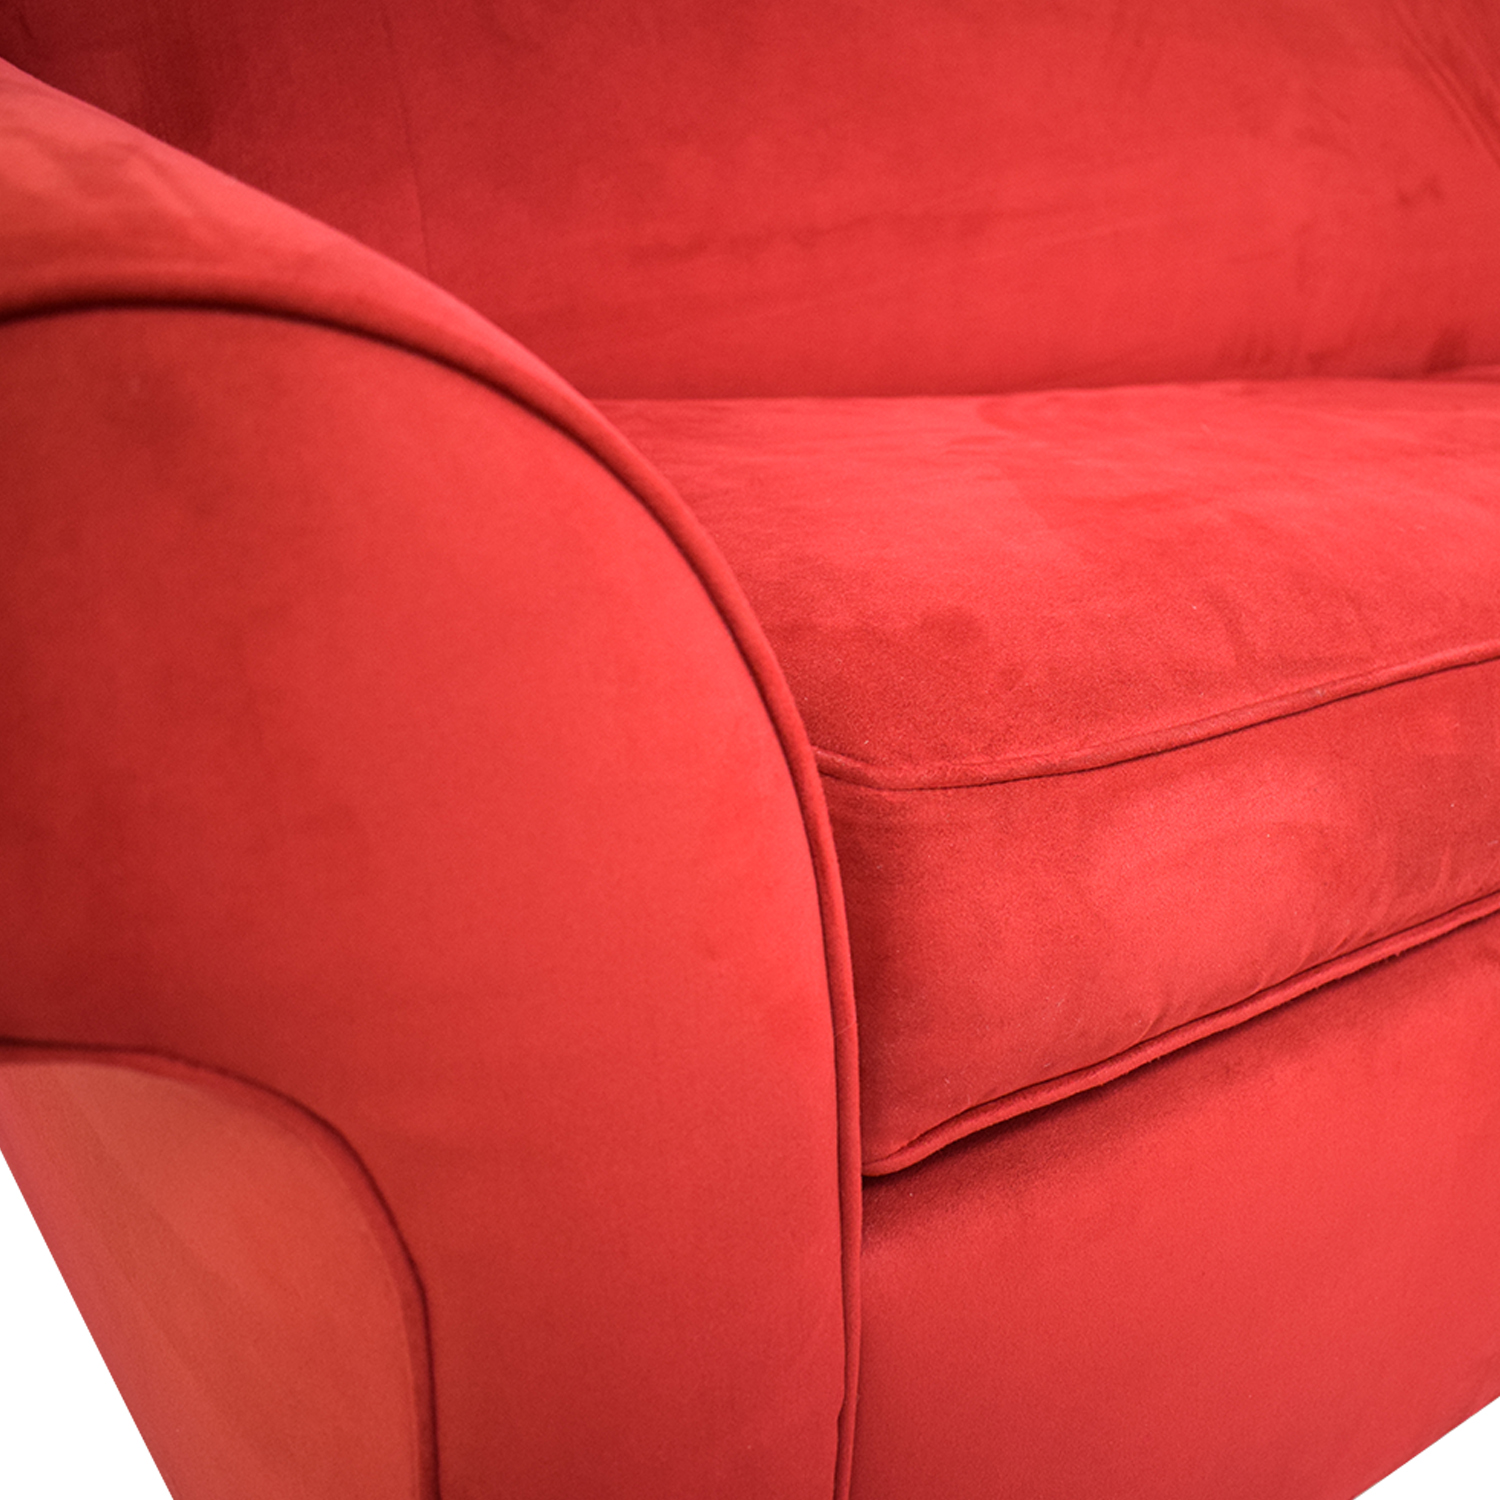 Kravet Kravet Red Sleeper Sofa for sale